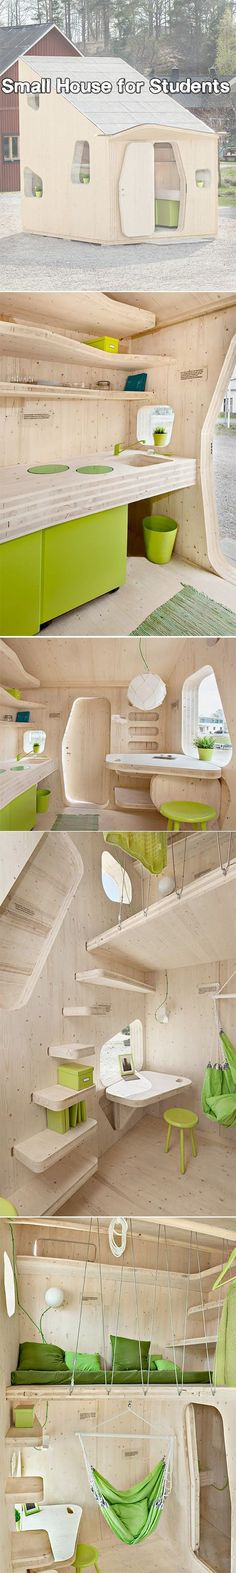 Eco-friendly house made out of wood can be easily transported and installed on university campuses and in other locations.Designed by Tengbom.